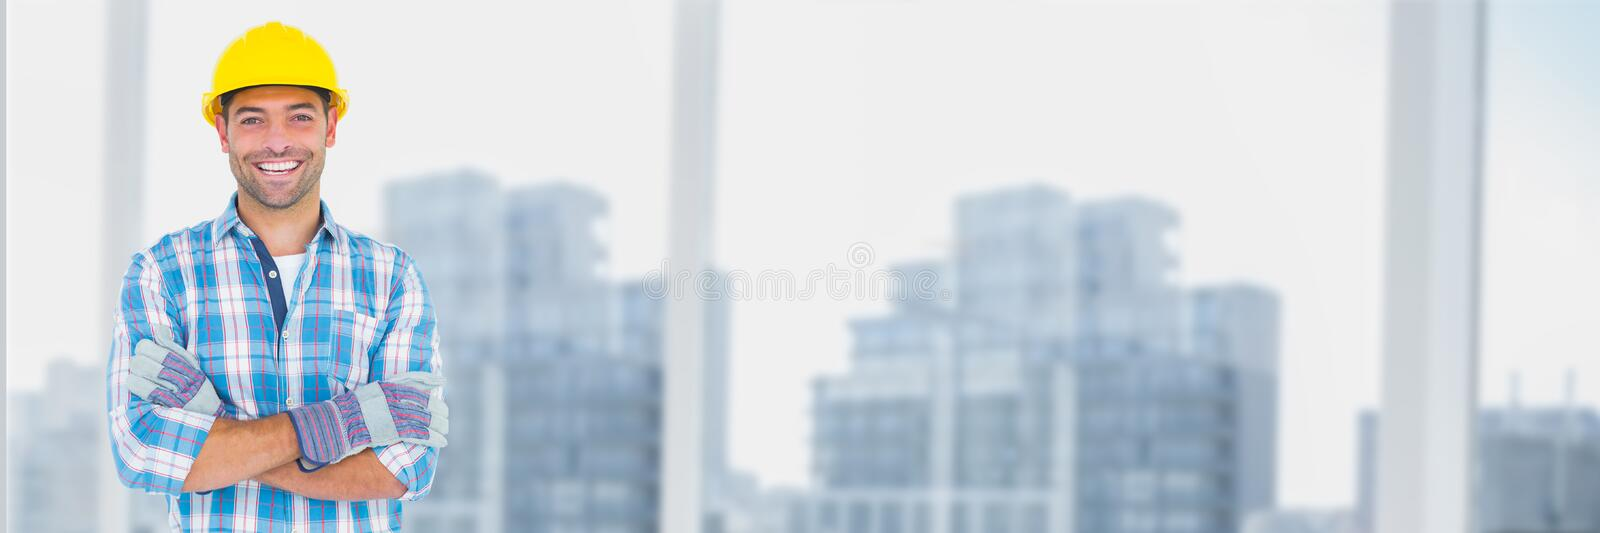 Construction Worker over city buildings stock images